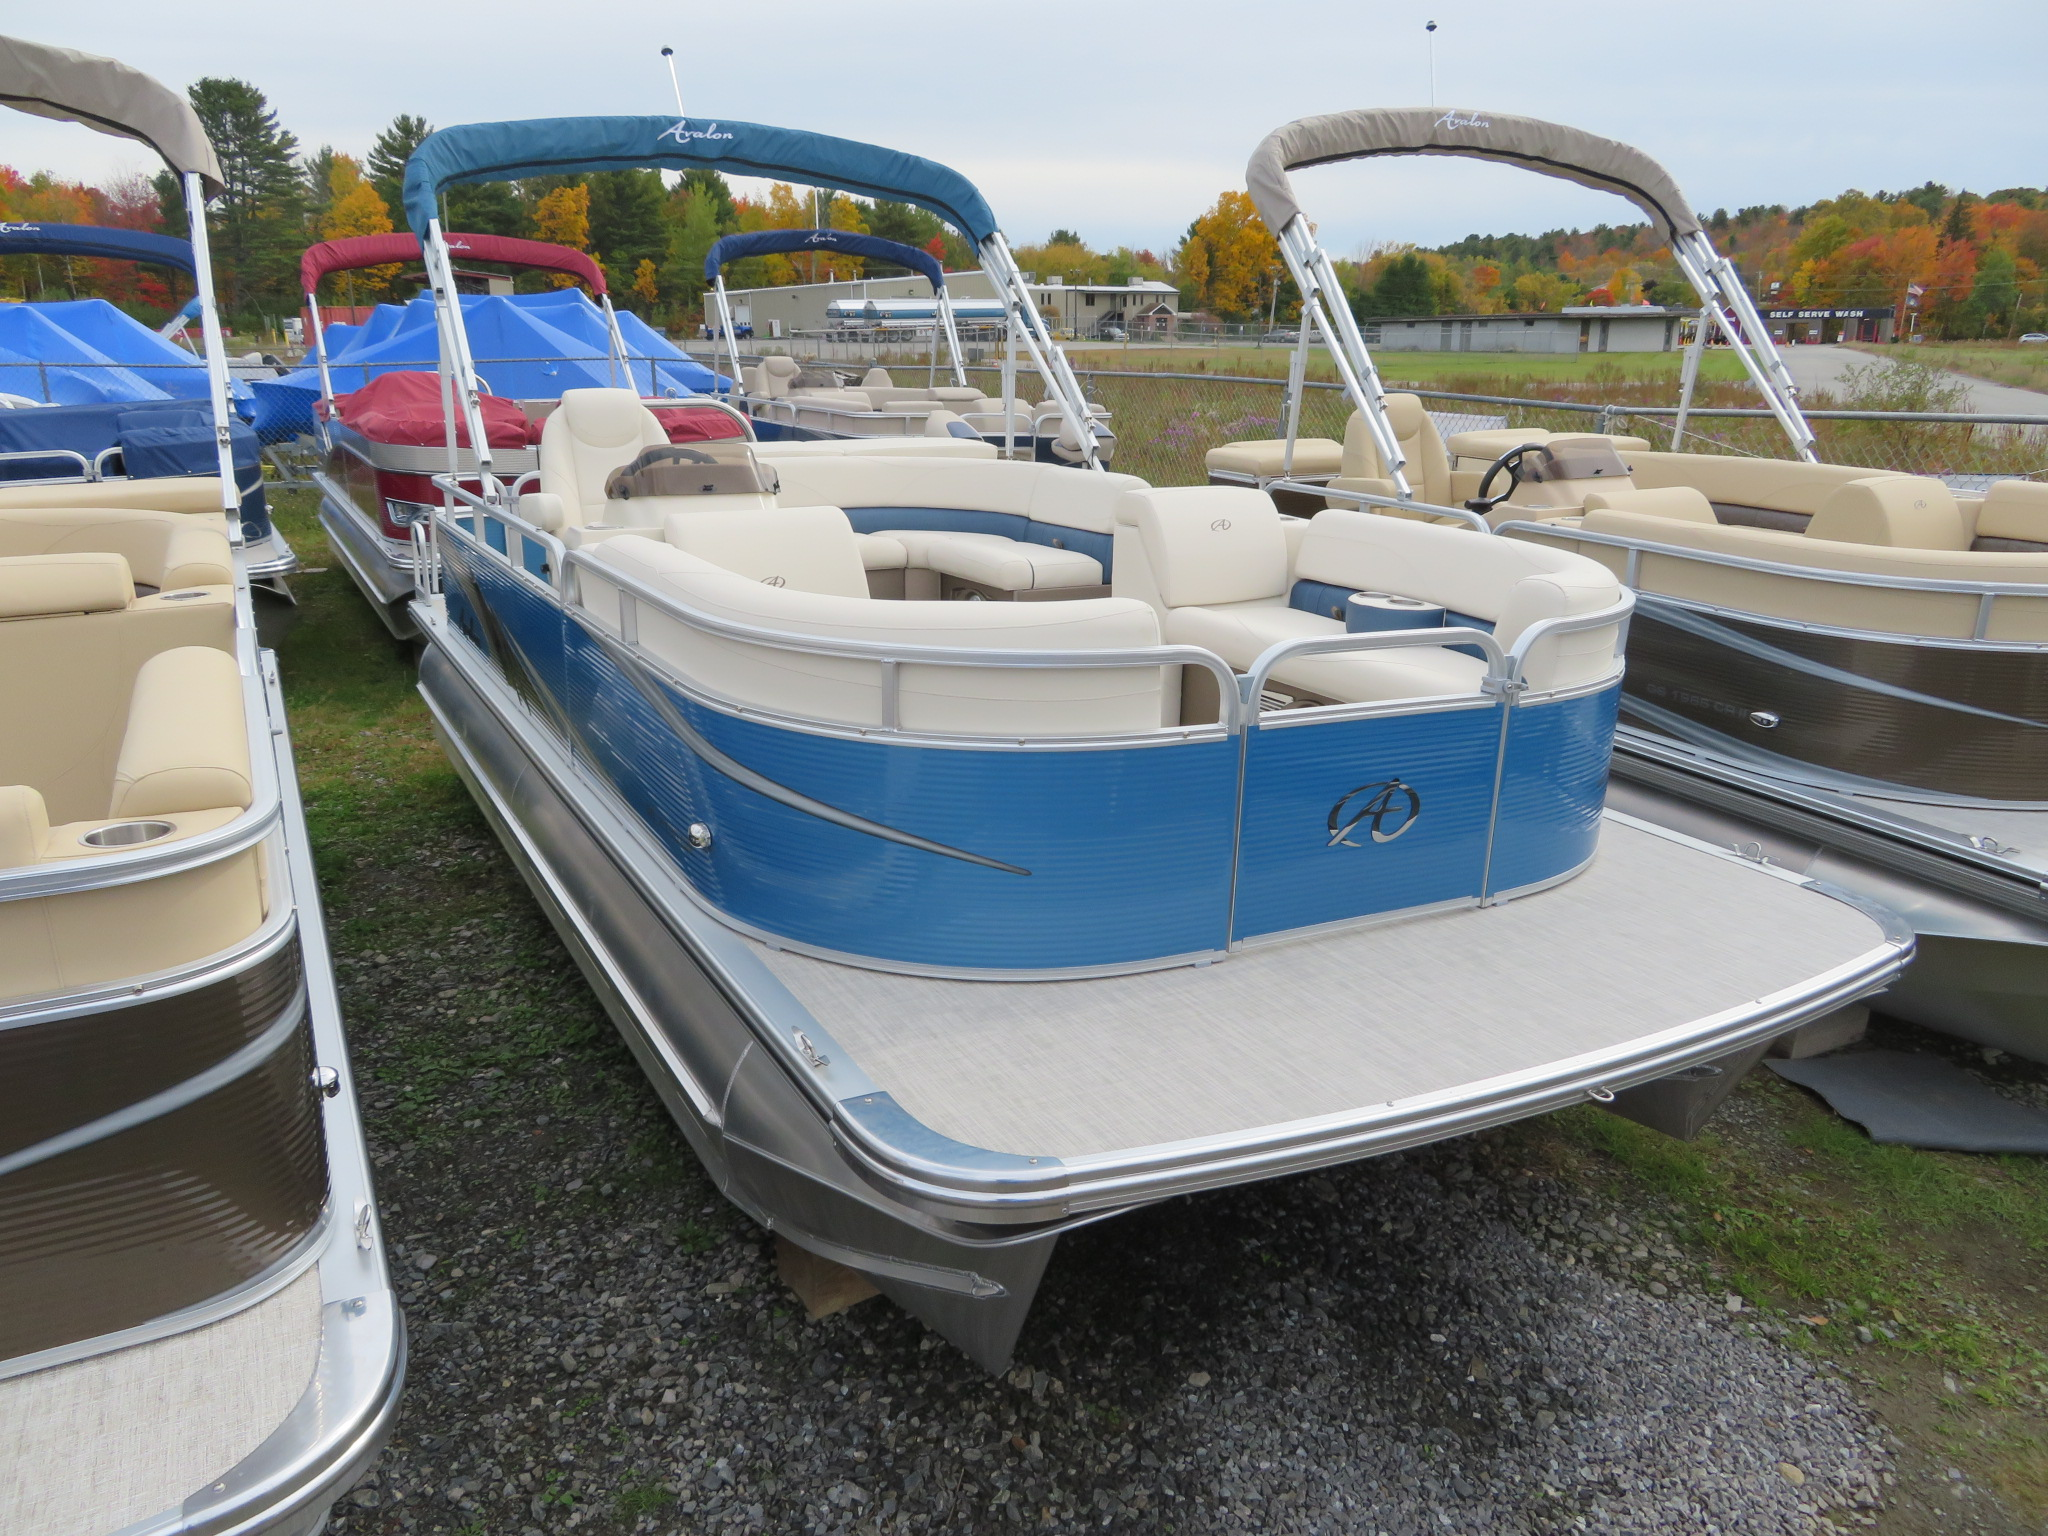 2021 Avalon 2185 GS CRUISE for sale in Manchester, ME. Clark Marine  Manchester, ME (207) 622-7011